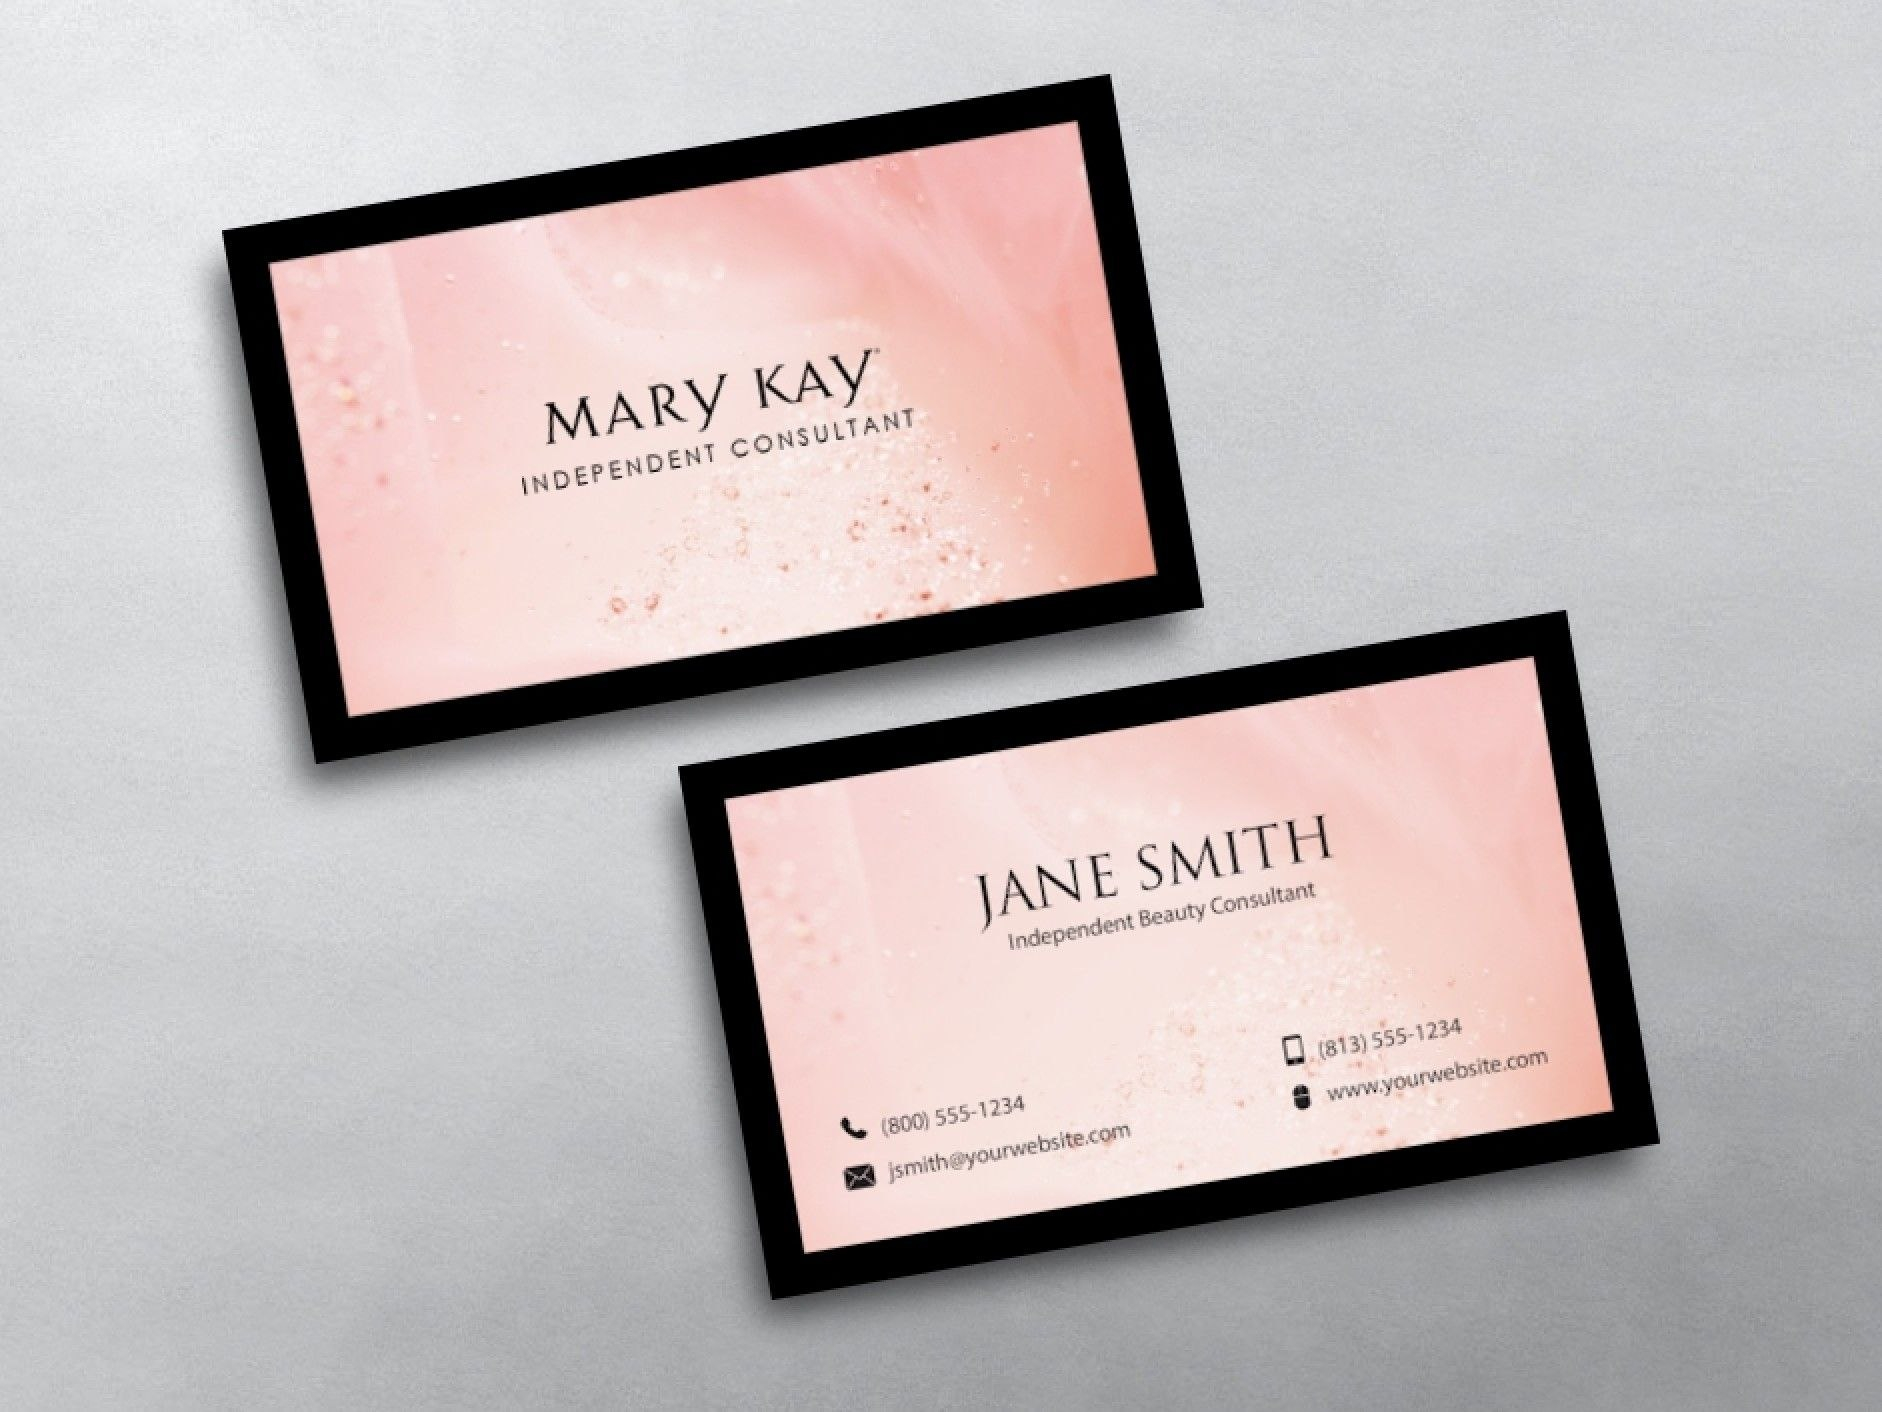 Mary Kay Business Cards In   Mary Kay Business  Mary Kay Free Inside Mary Kay Business Cards Templates Free